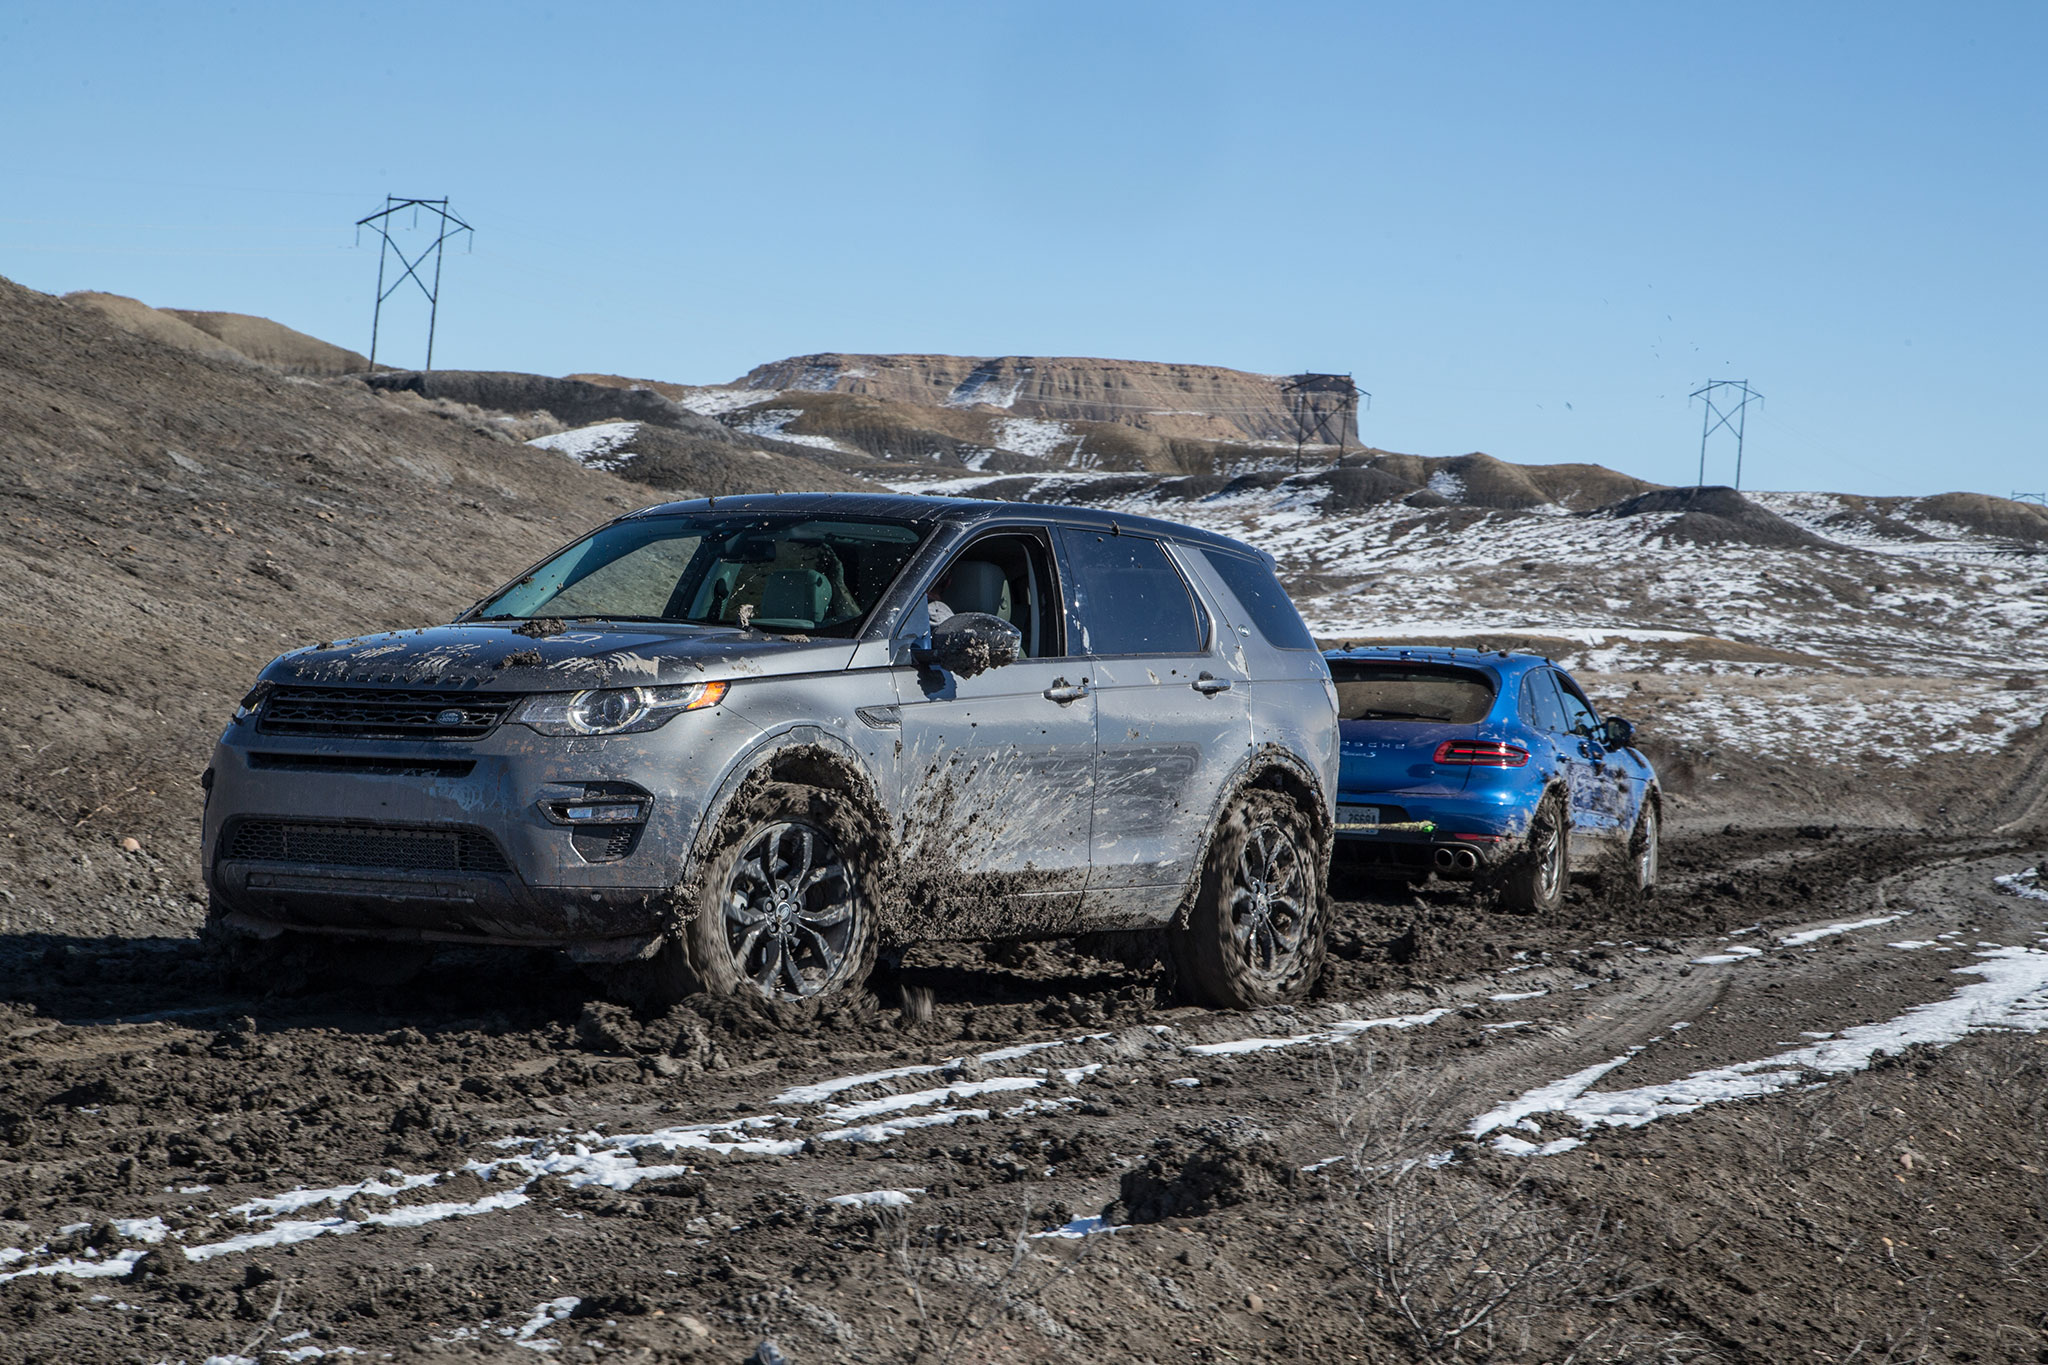 http://st.automobilemag.com/uploads/sites/11/2016/04/2016-Land-Rover-Discovery-Sport-HSE-Luxury-in-mud-19.jpg